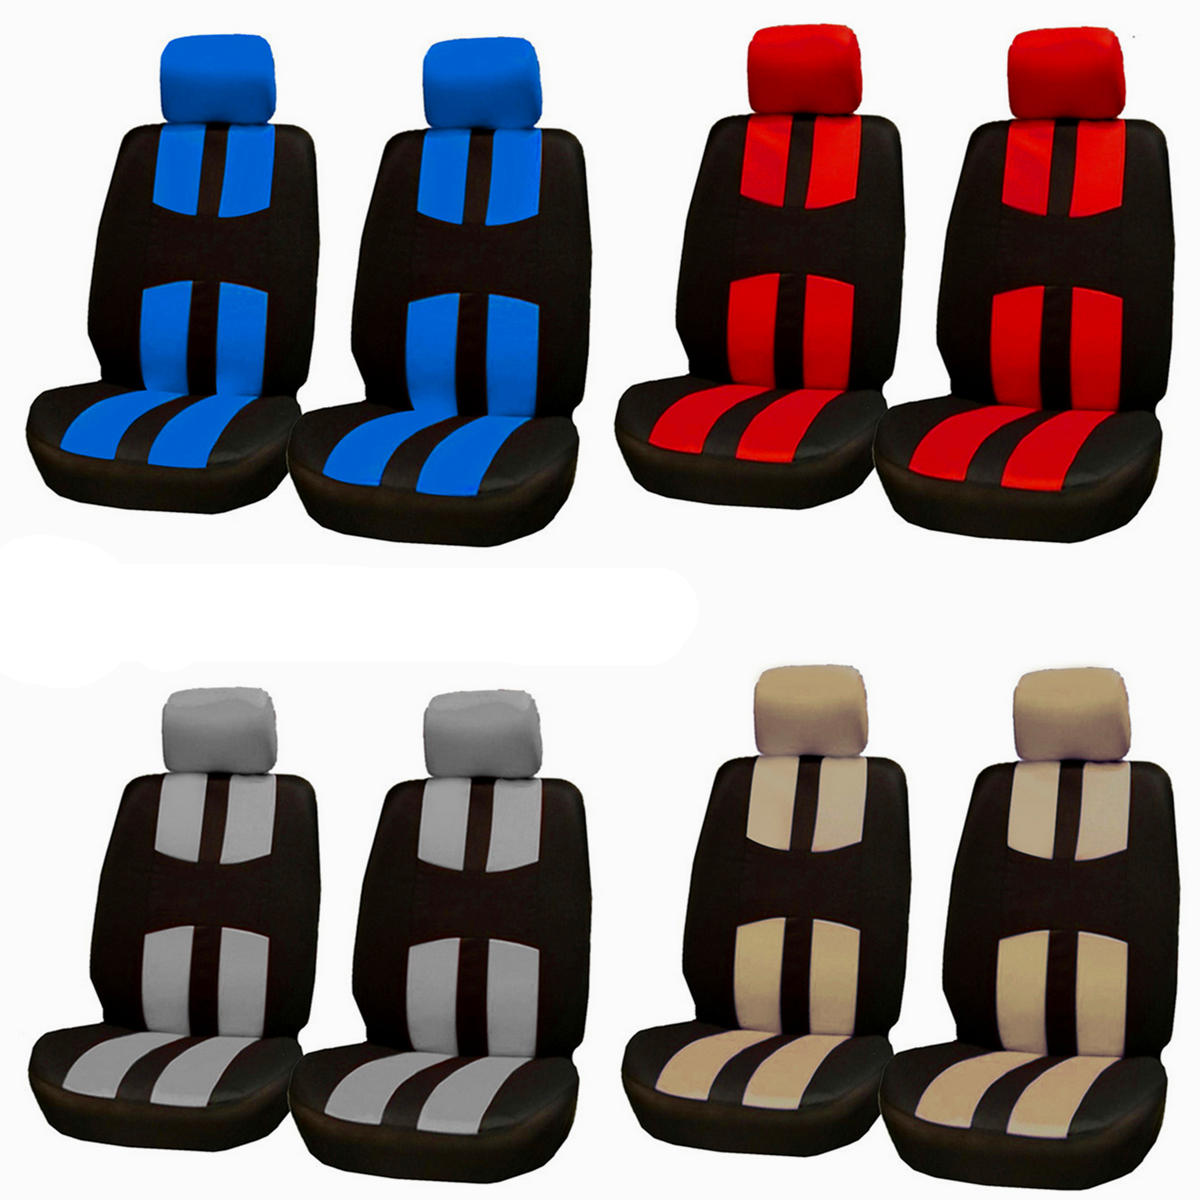 Full Set Car Seat Cover Polyester For Auto Truck SUV 2 Heads Breathable 3D Air Mesh Fabric фото